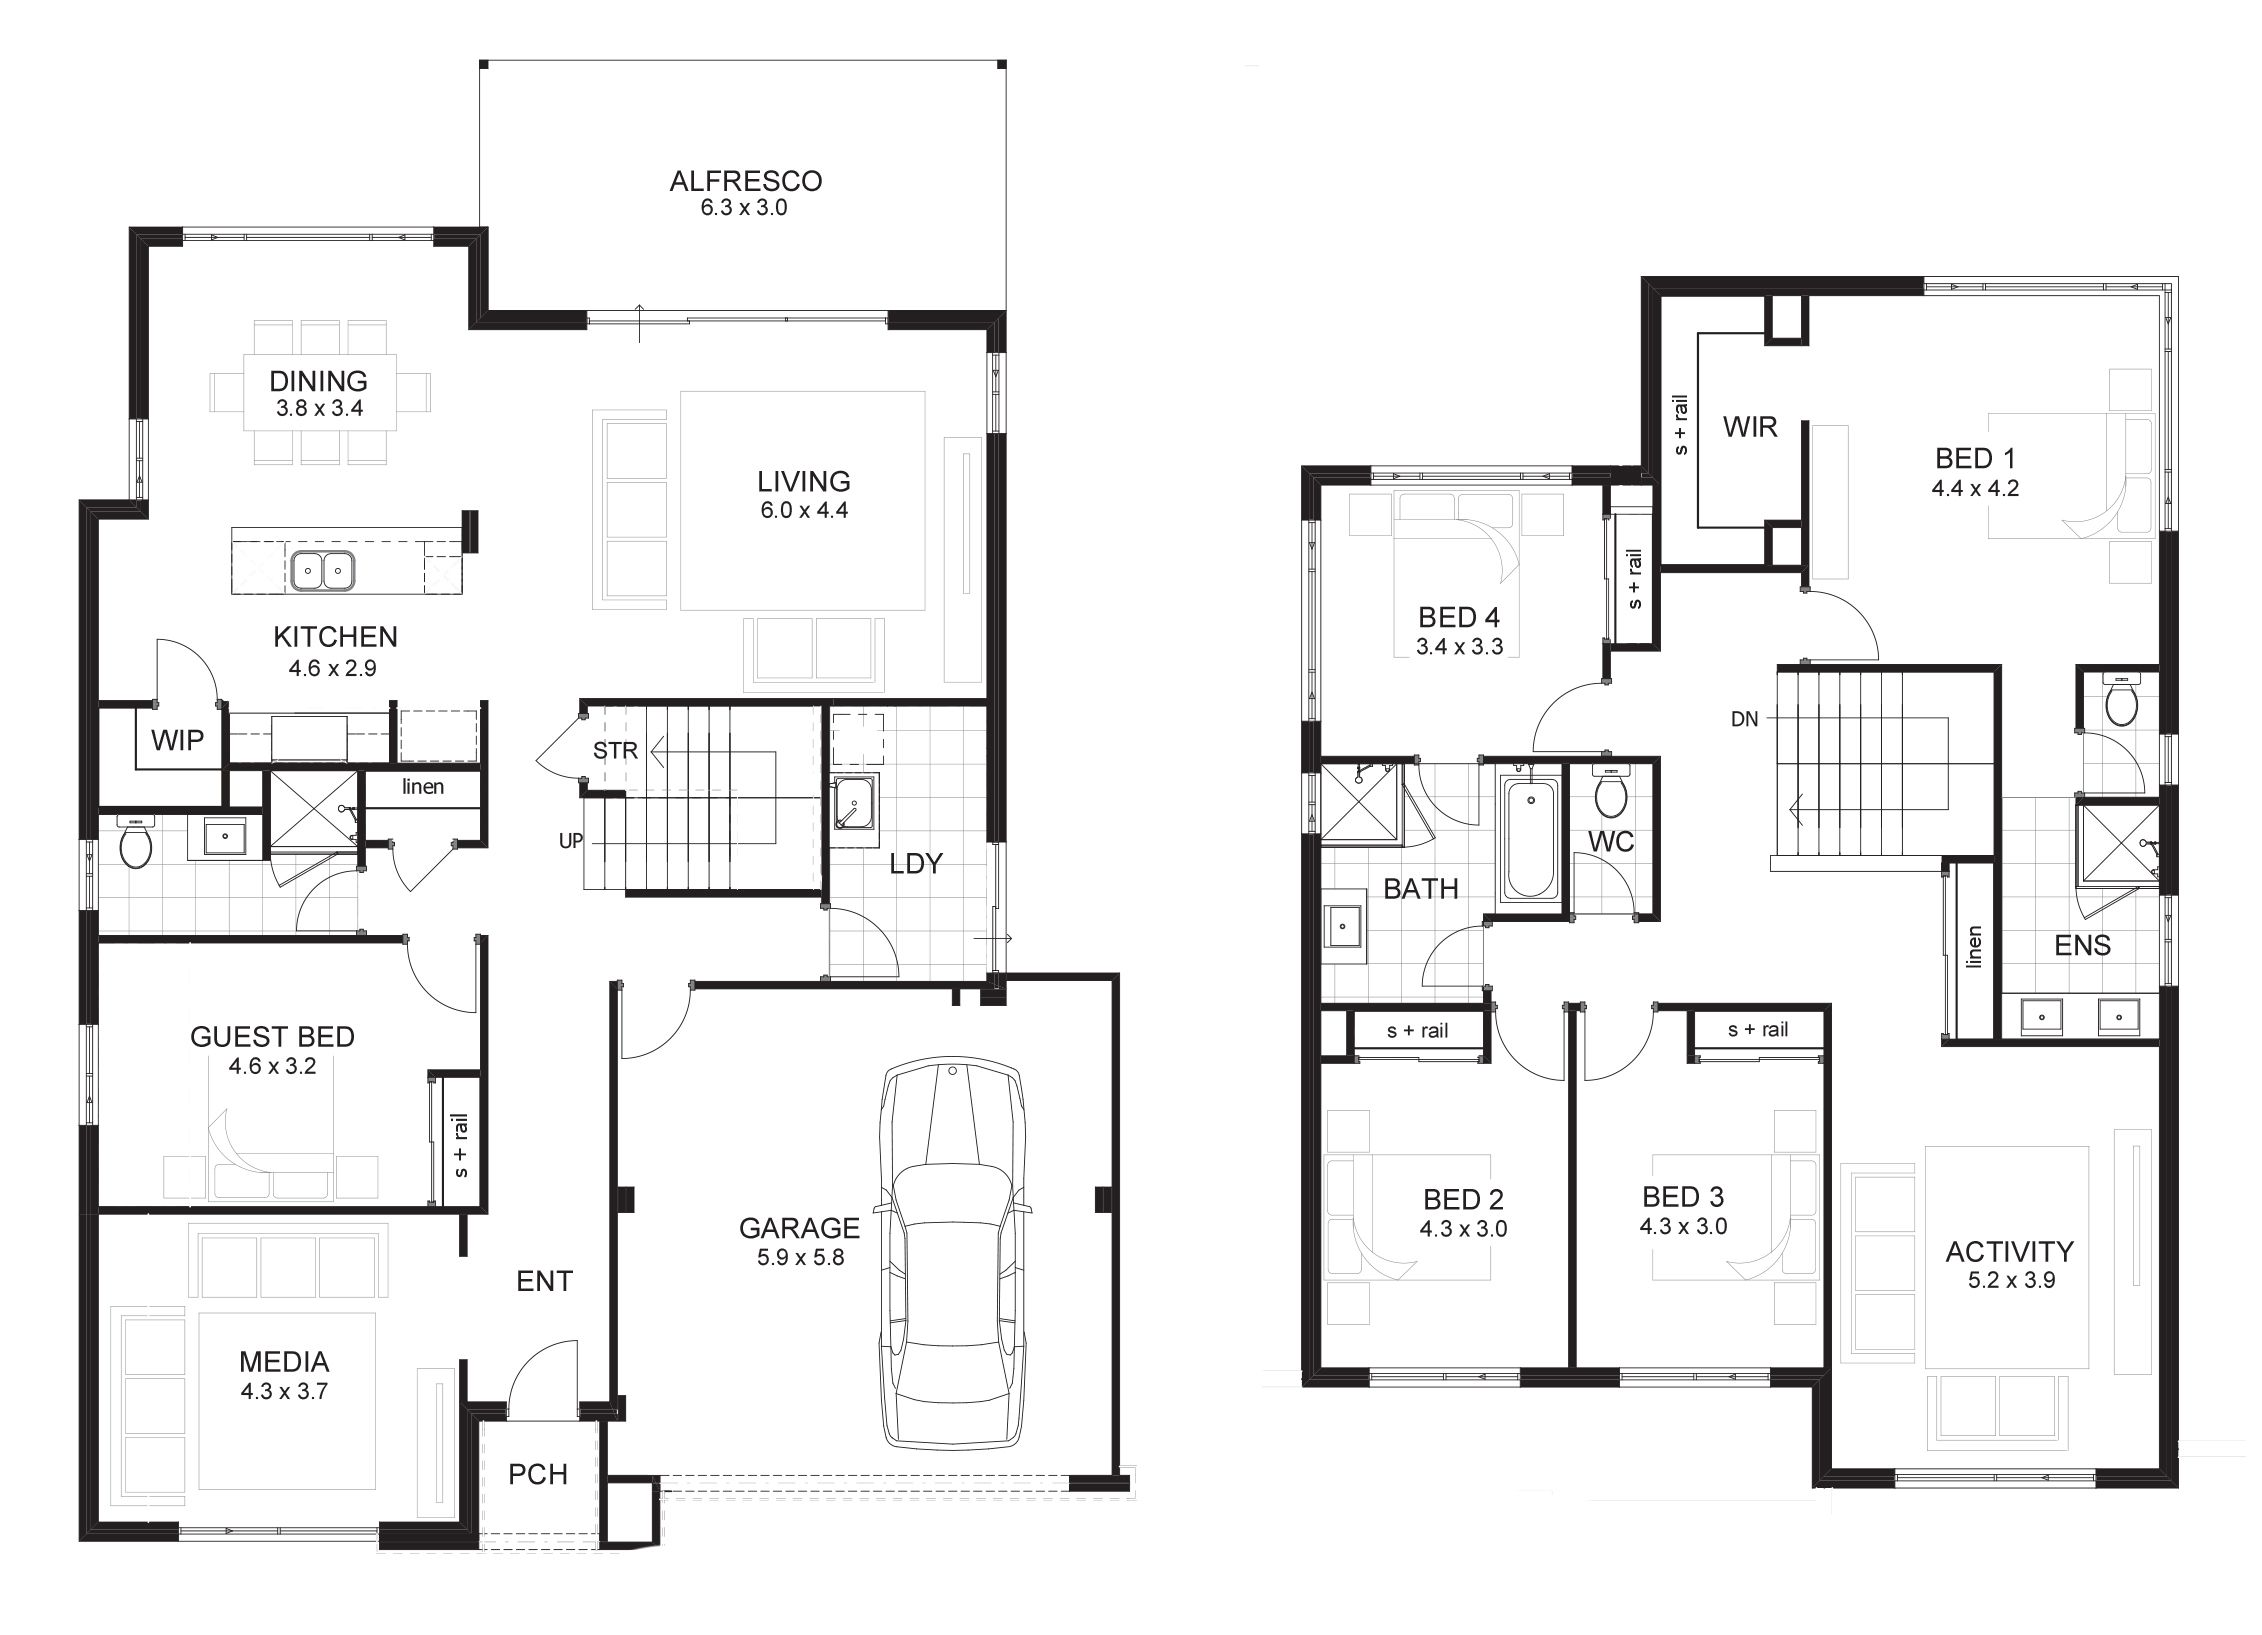 6 bedroom house plans perth pinterest for Two storey house plans with 4 bedrooms